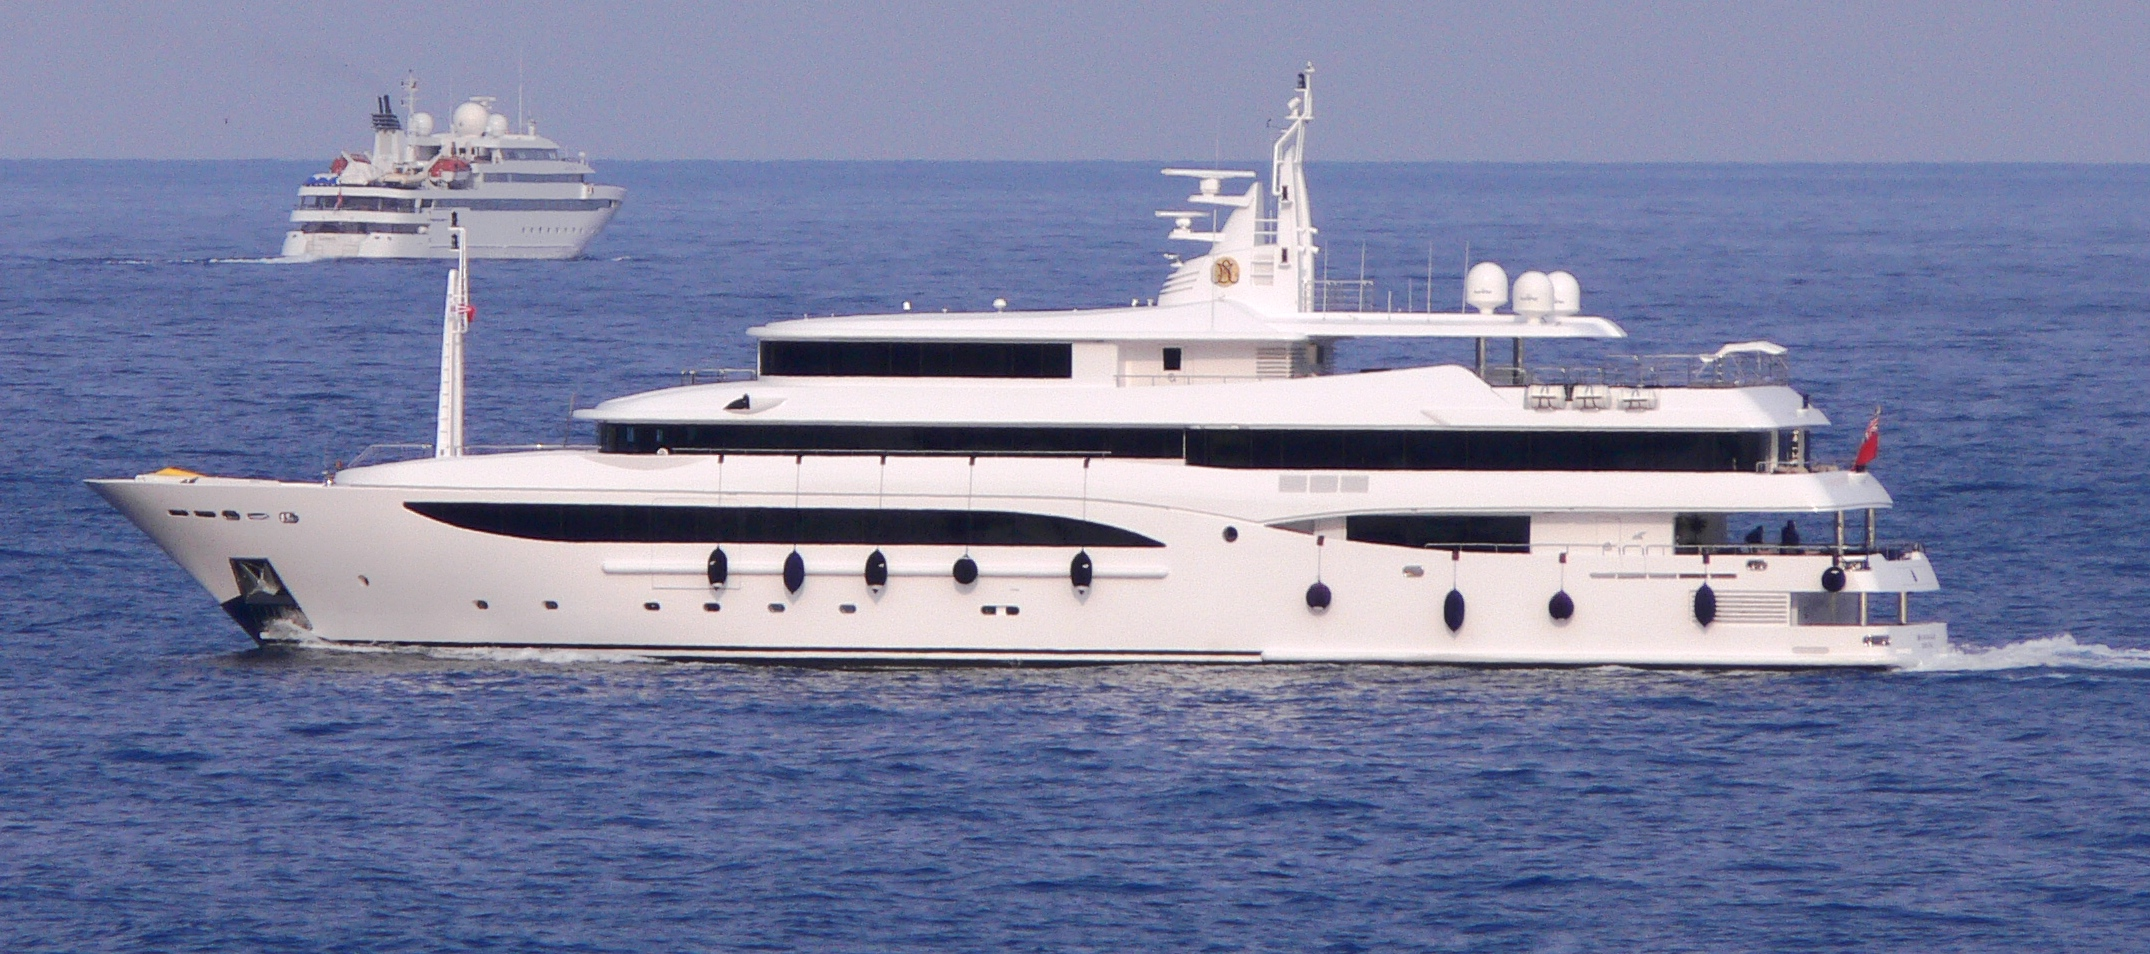 Large crn luxury yacht givi or ms superyachts news for Large motor yachts for sale